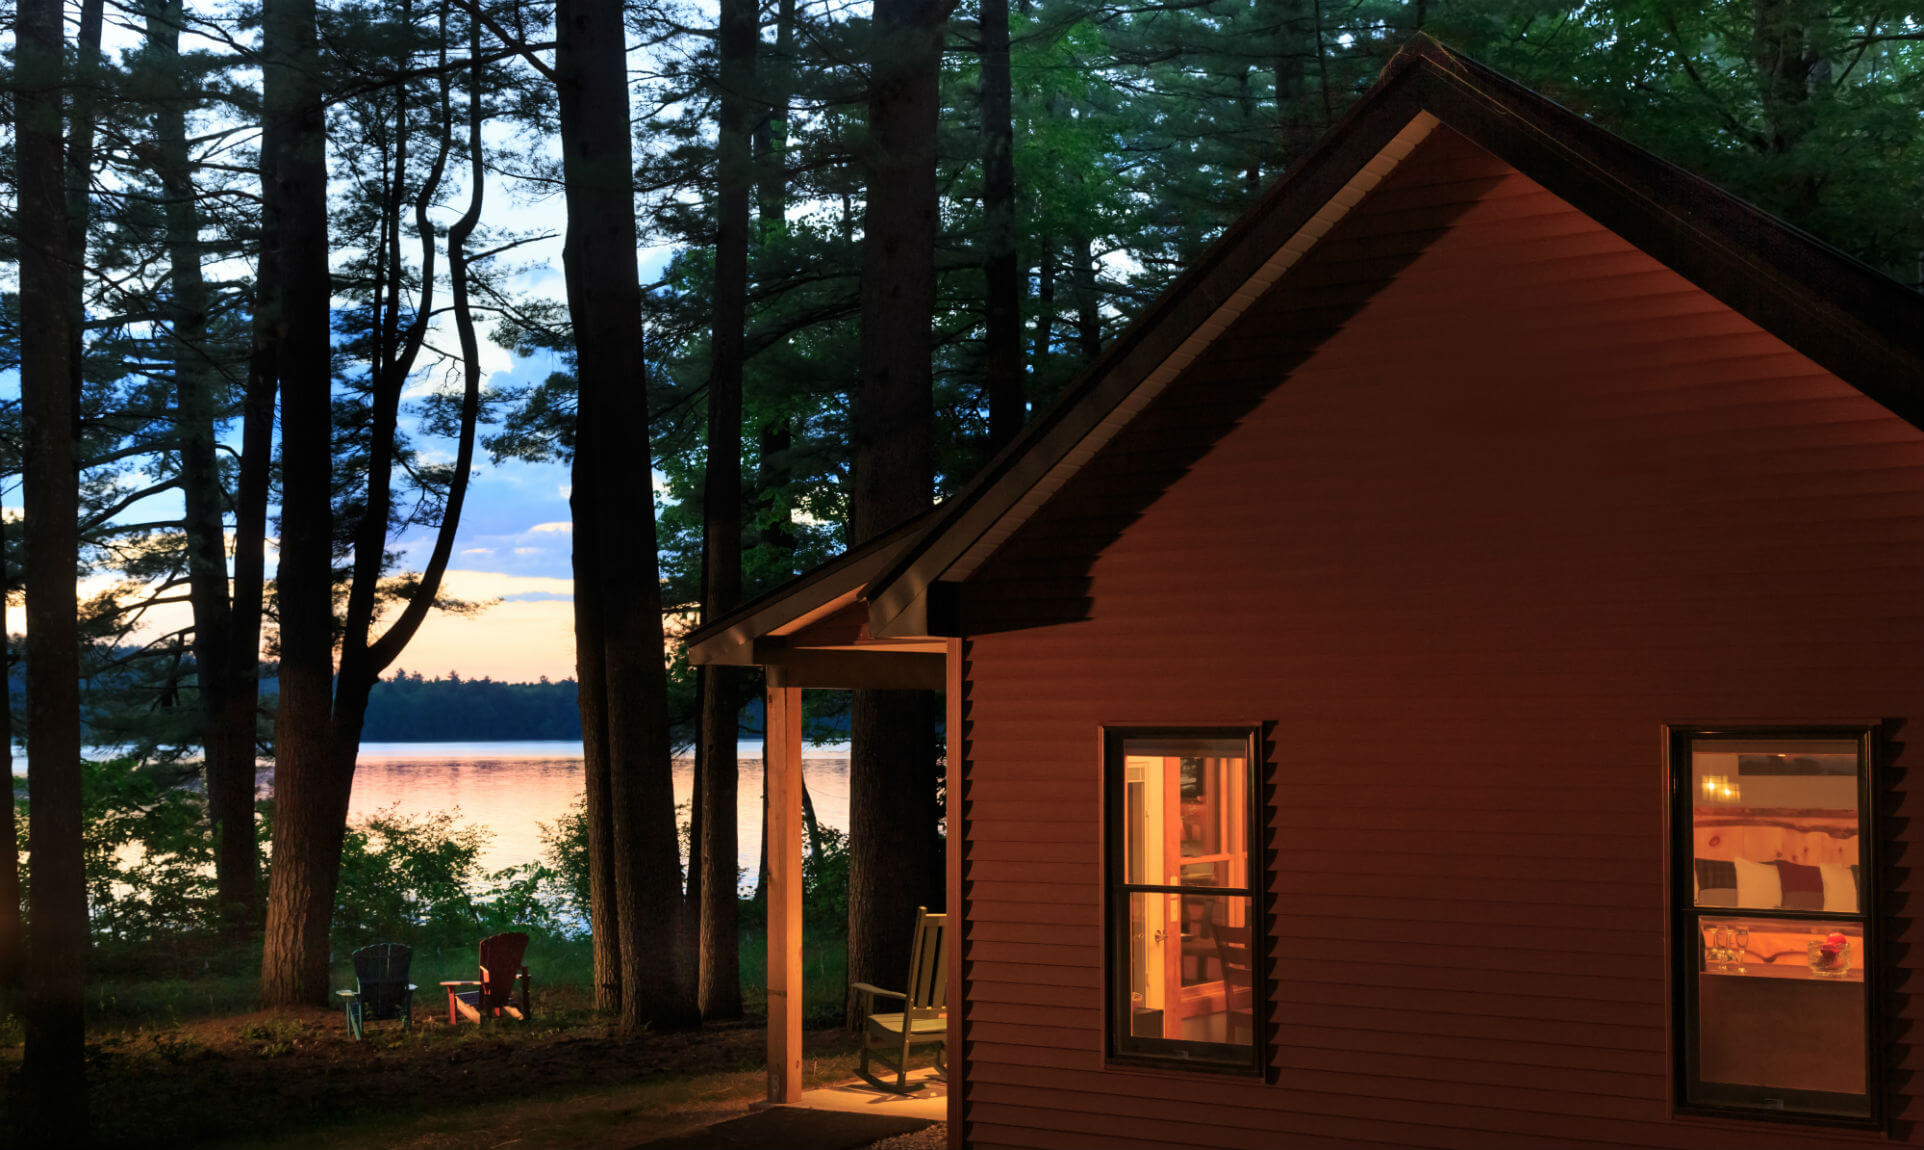 Exterior of Eagle's Nest Cabin nestled in trees near lake